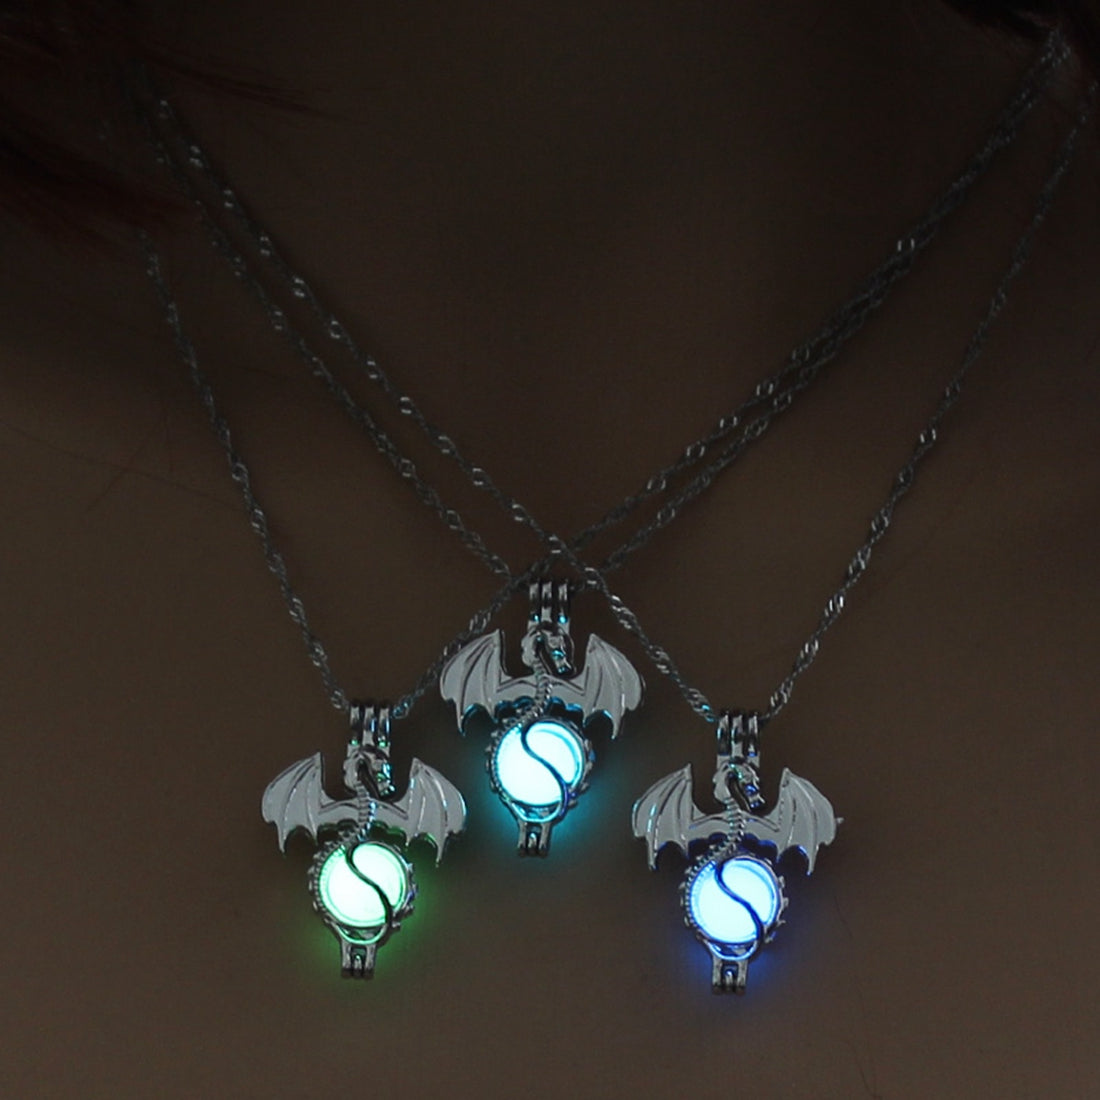 Vintage Christmas Gift Game of Throne Dragon Punk Luminous Pendant Necklace Glow in the Dark 3 Colors Cute Sweater Chain